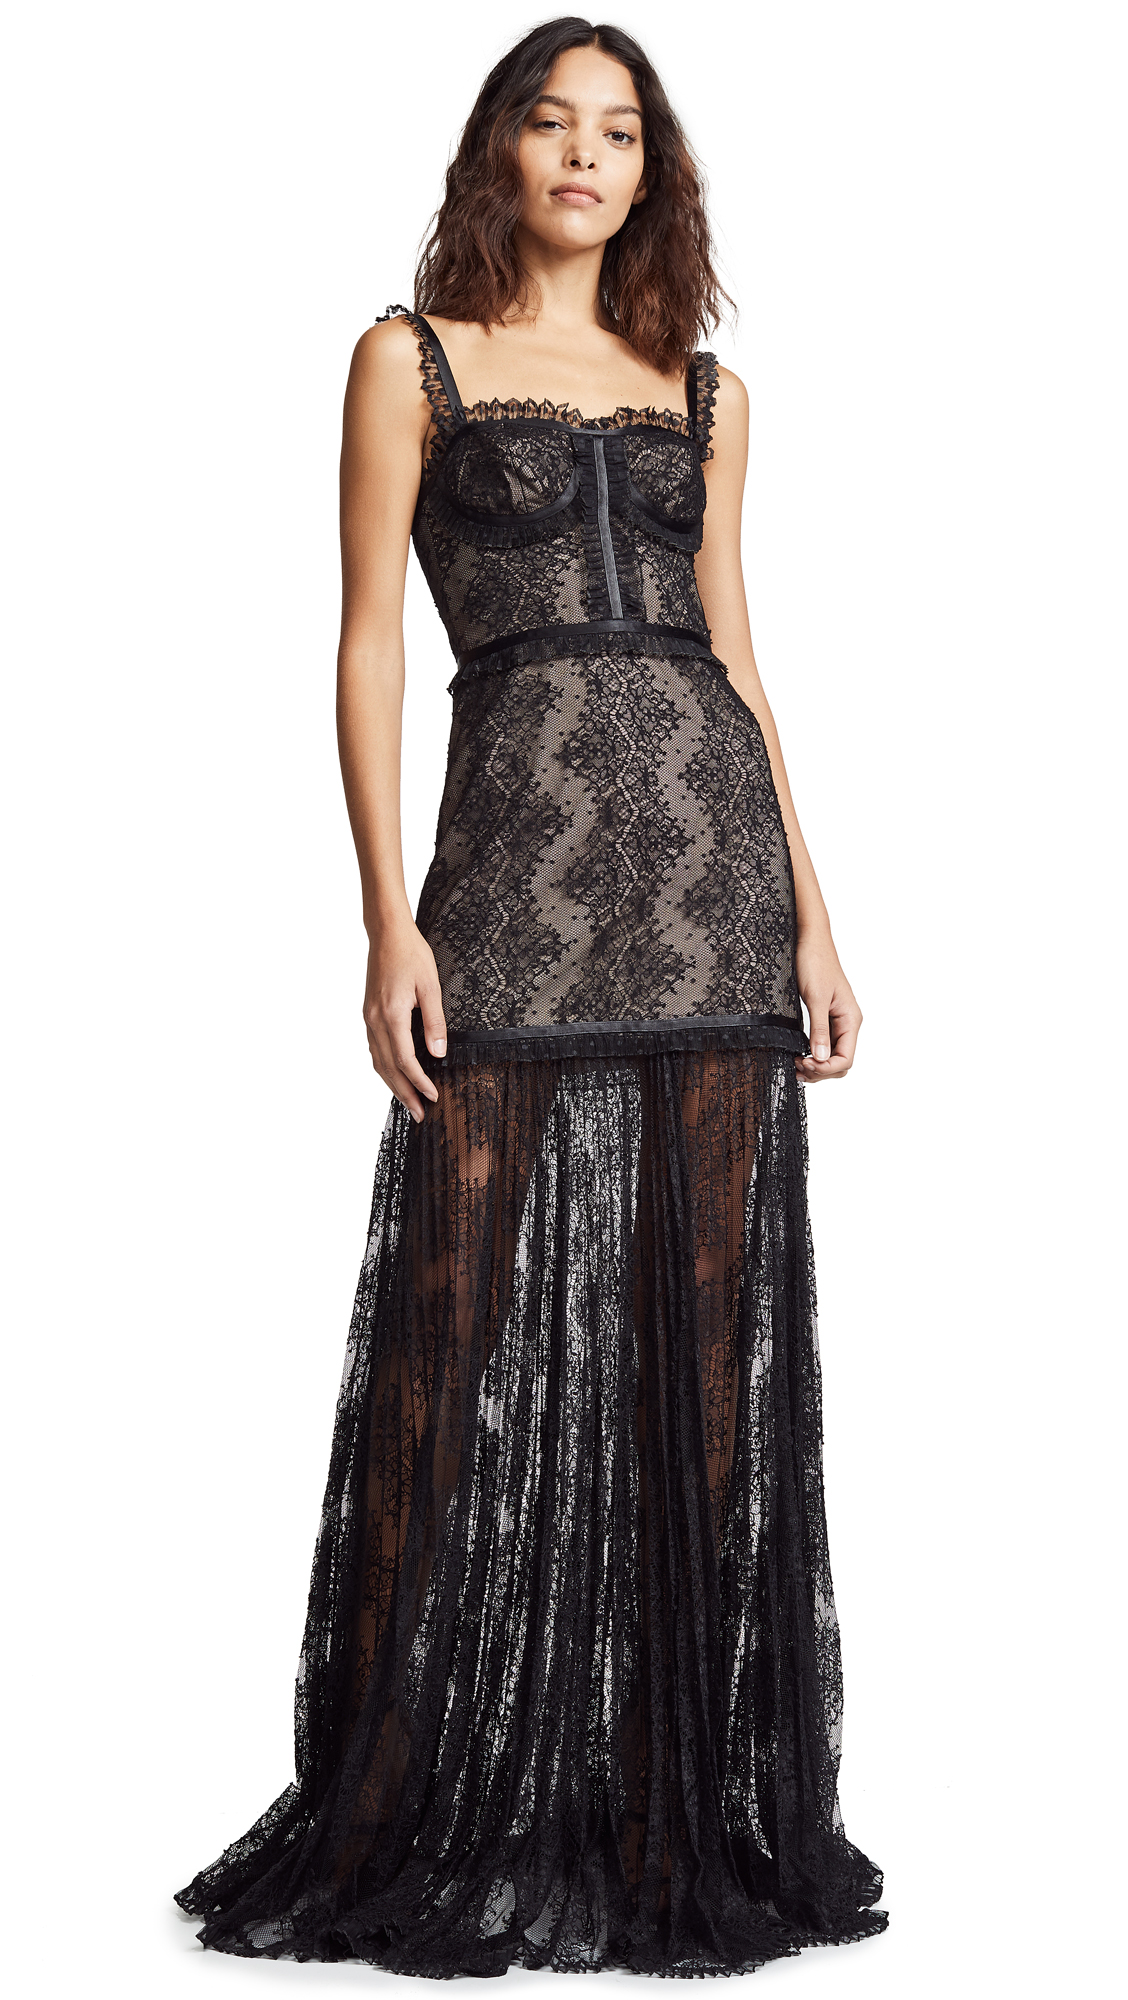 Kieran Lace Bustier Cocktail Dress in Black Lace